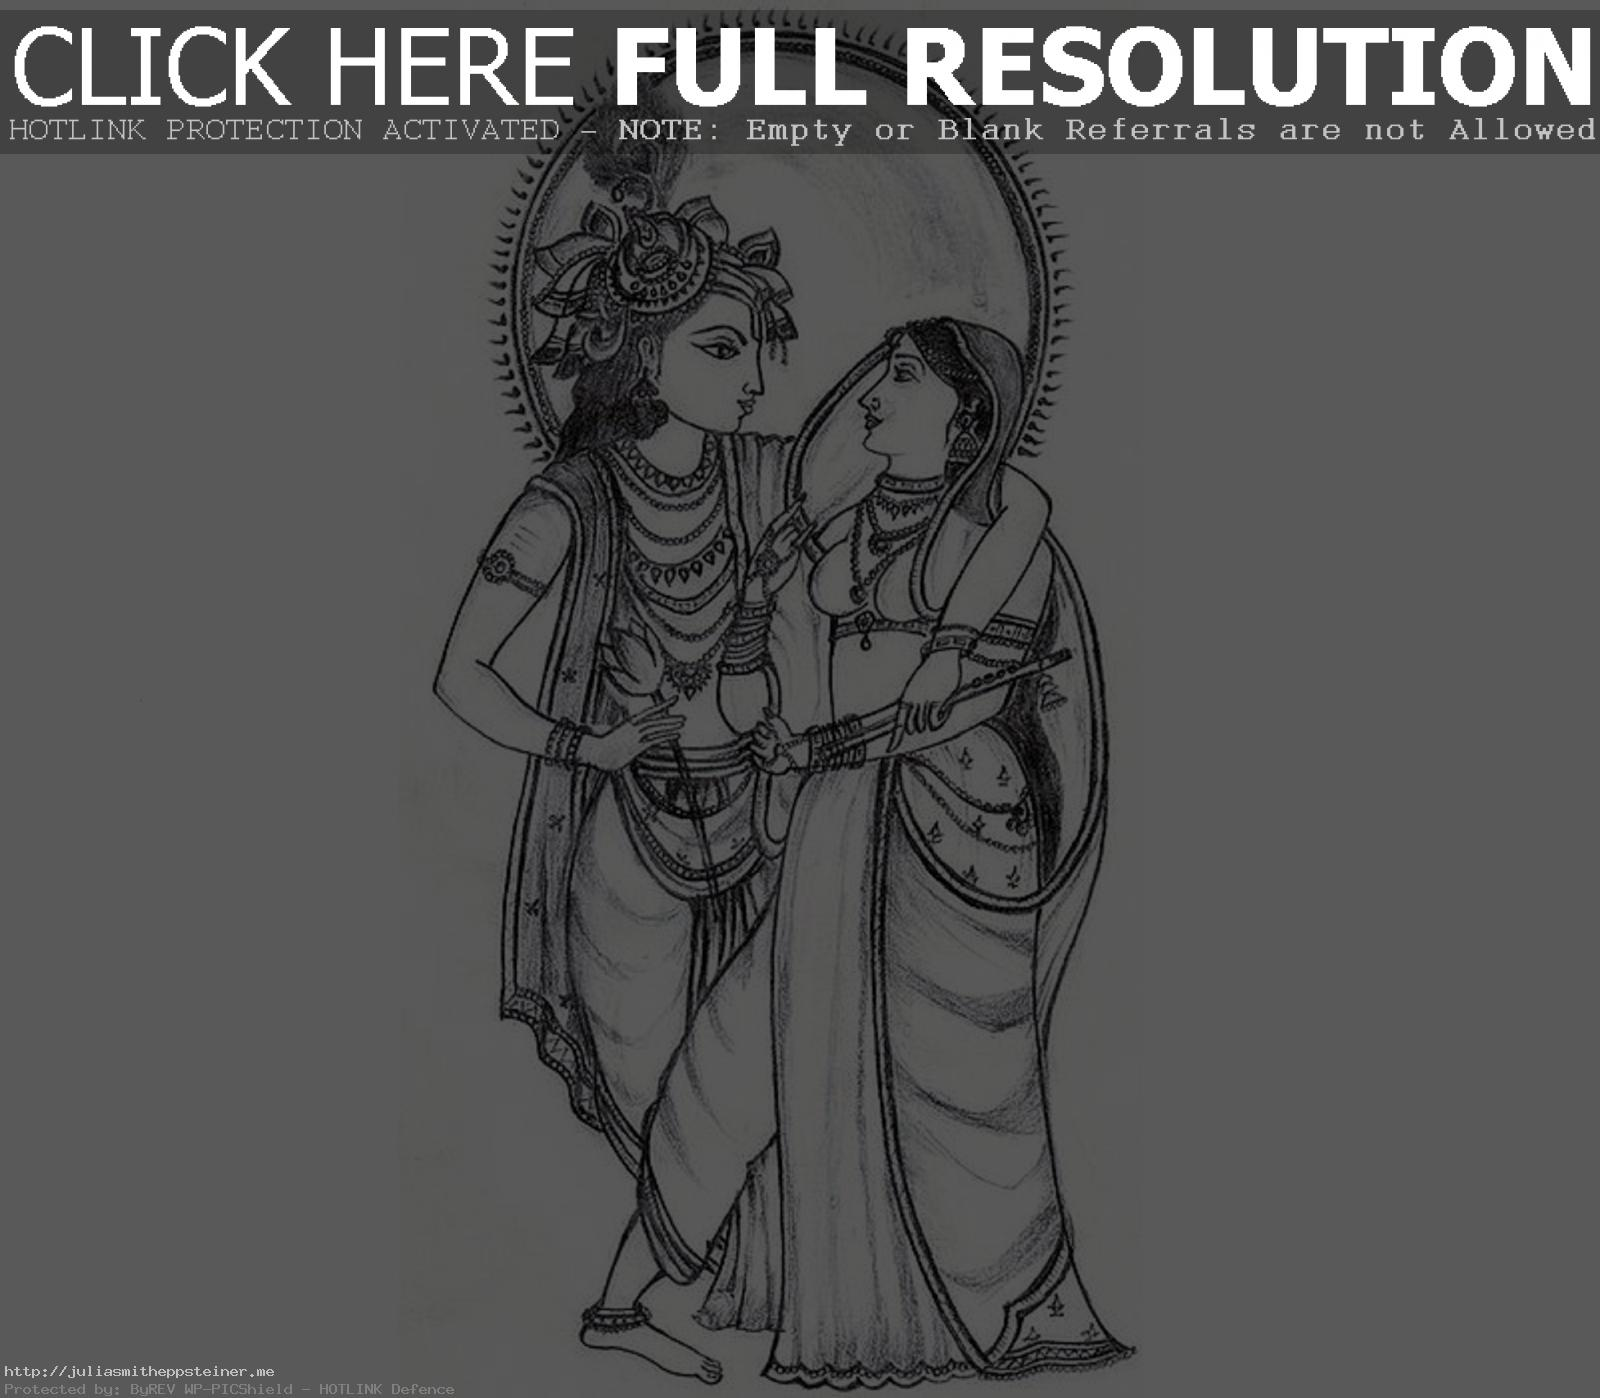 Pictures Wallpapers Radha Krishna Drawin-Pictures Wallpapers Radha Krishna Drawing DRAWING ART GALLERY Tearing-11